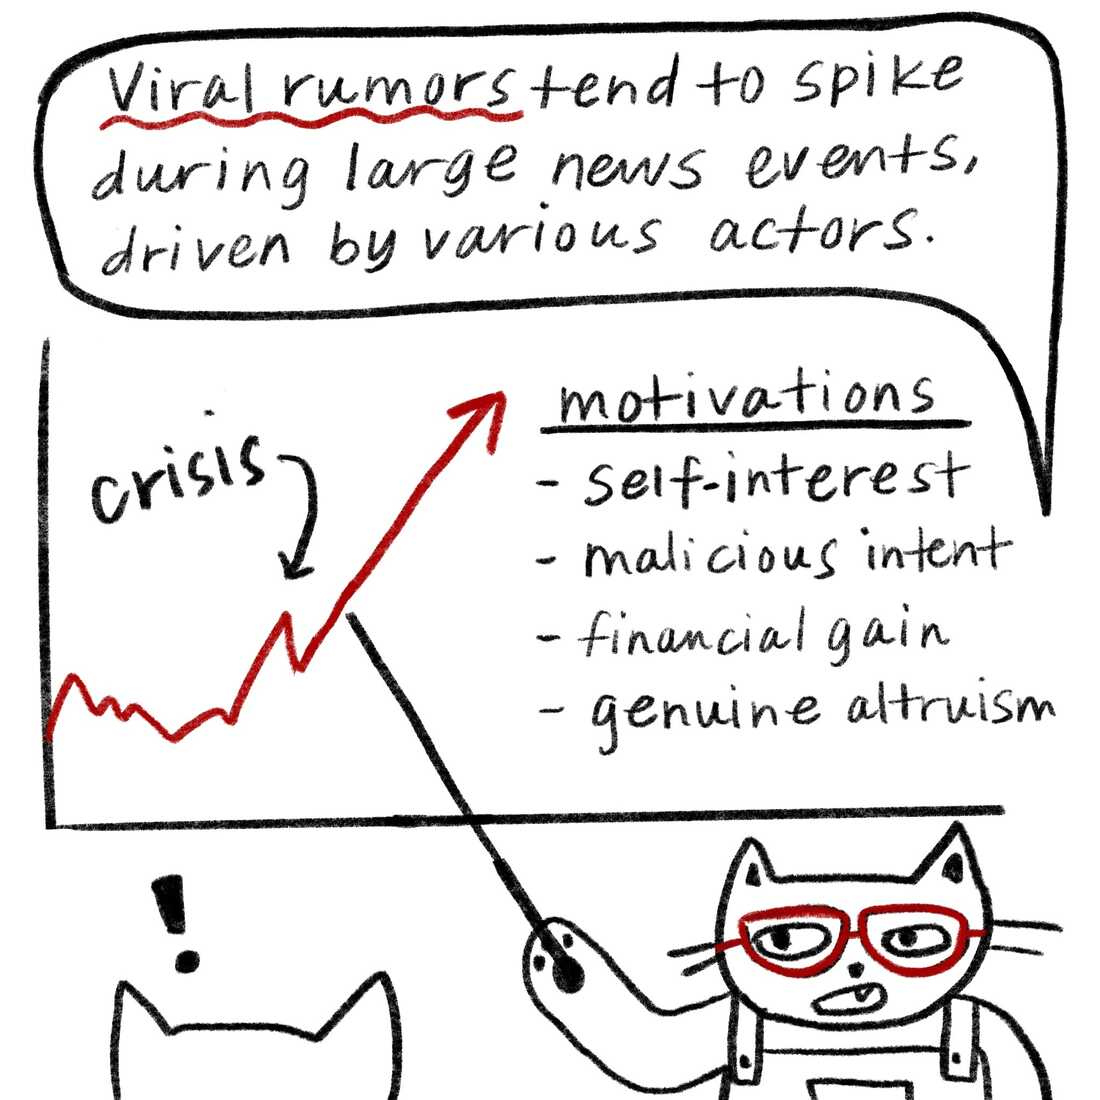 """Glasses cat speaking and pointing to charts on a whiteboard: """"Viral rumors tend to spike during large news events, driven by various actors. Their motivations could be self-interest, malicious intent, financial gain or genuine altruism."""""""